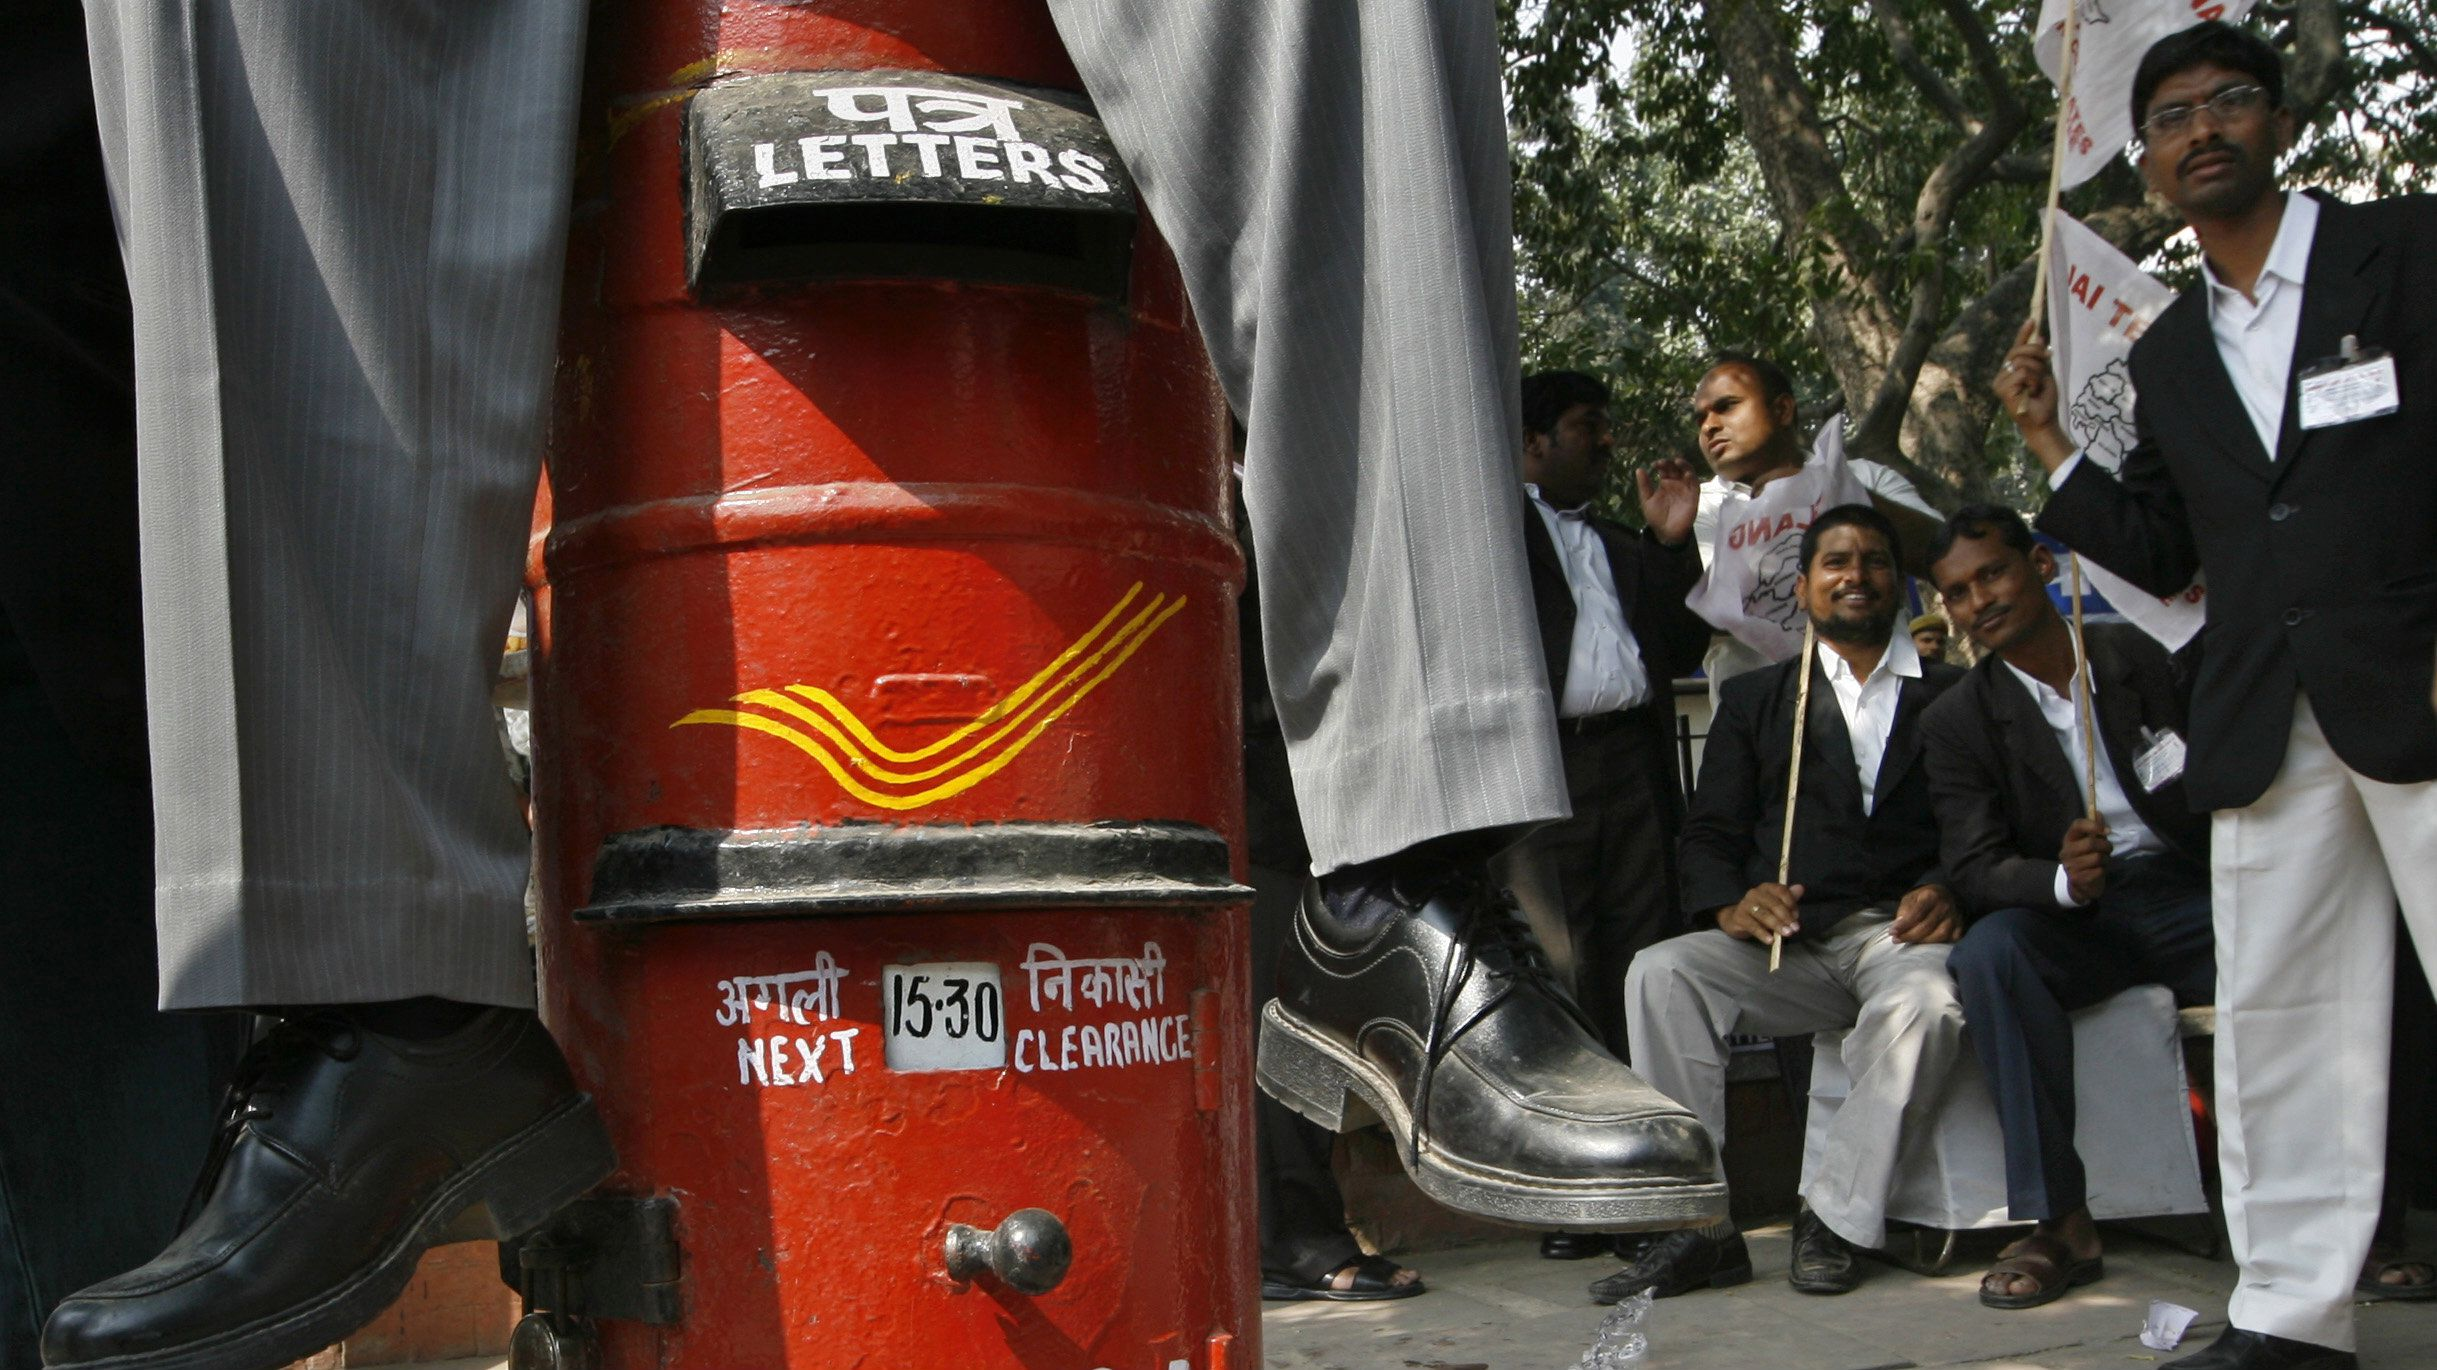 A pro-Telangana supporter sits on a letter box as others watch during a protest in New Delhi February 22, 2010. The protest was held to demand a new state to be carved in the southern Indian state of Andhra Pradesh, supporters said.  (INDIA - Tags: CIVIL UNREST)